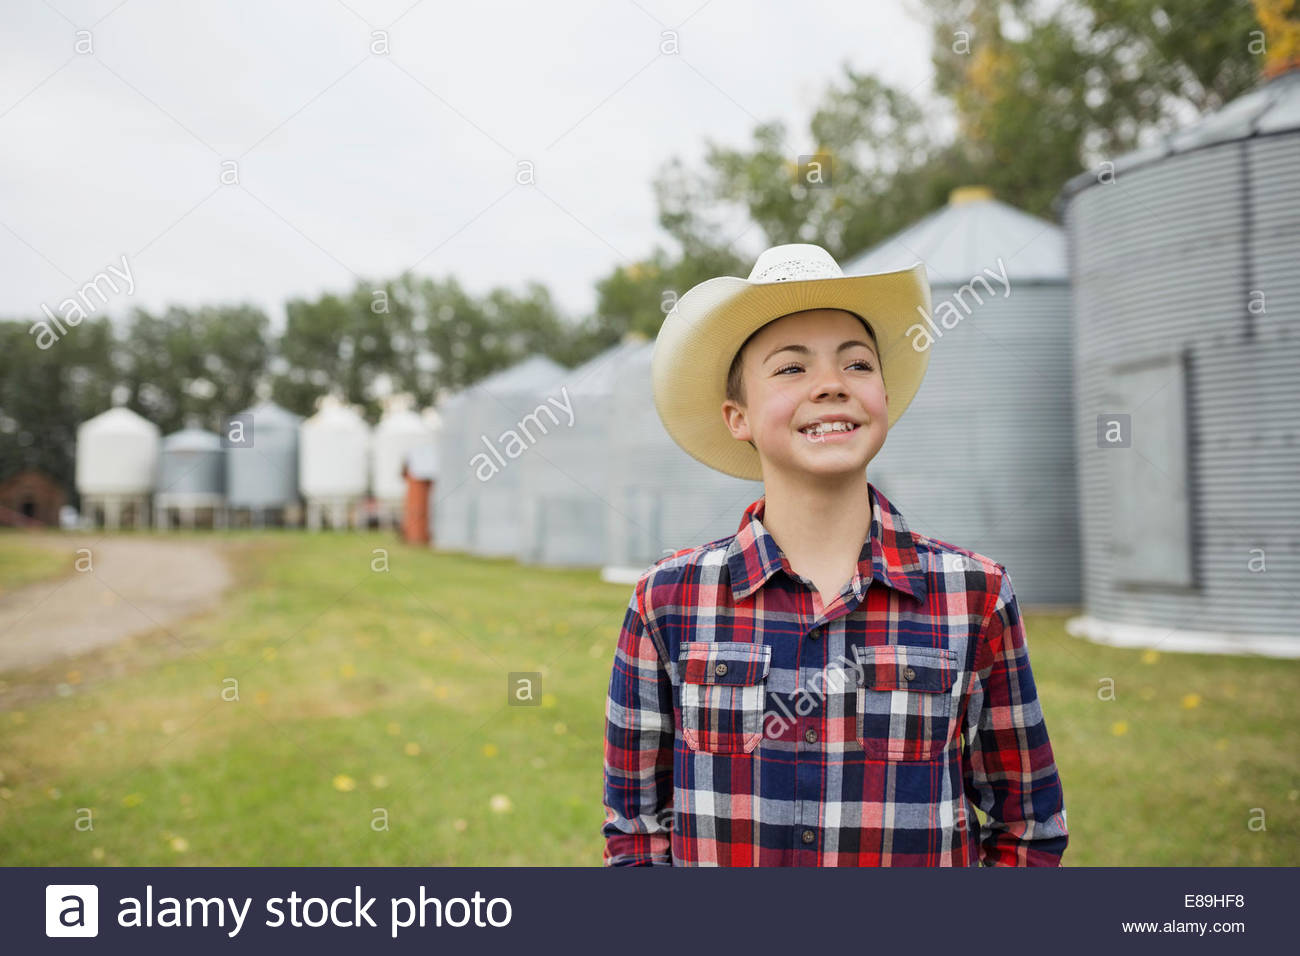 Boy in cowboy hat smiling on farm Photo Stock